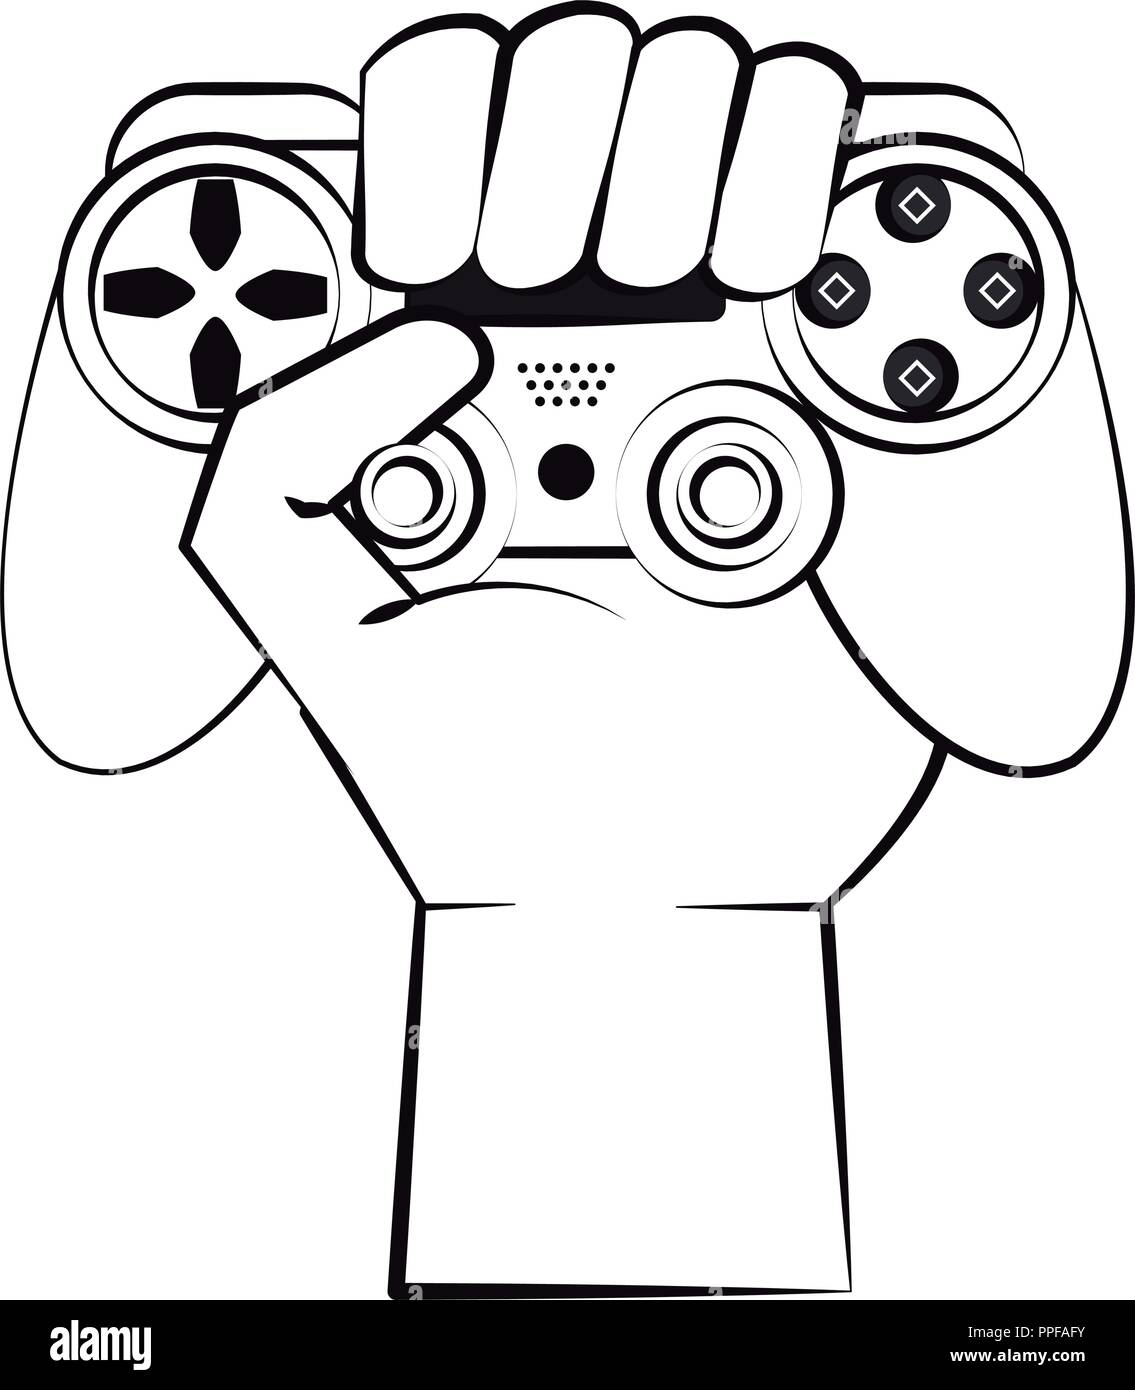 Hand Holding Video Game Controller Stock Vector Images Alamy